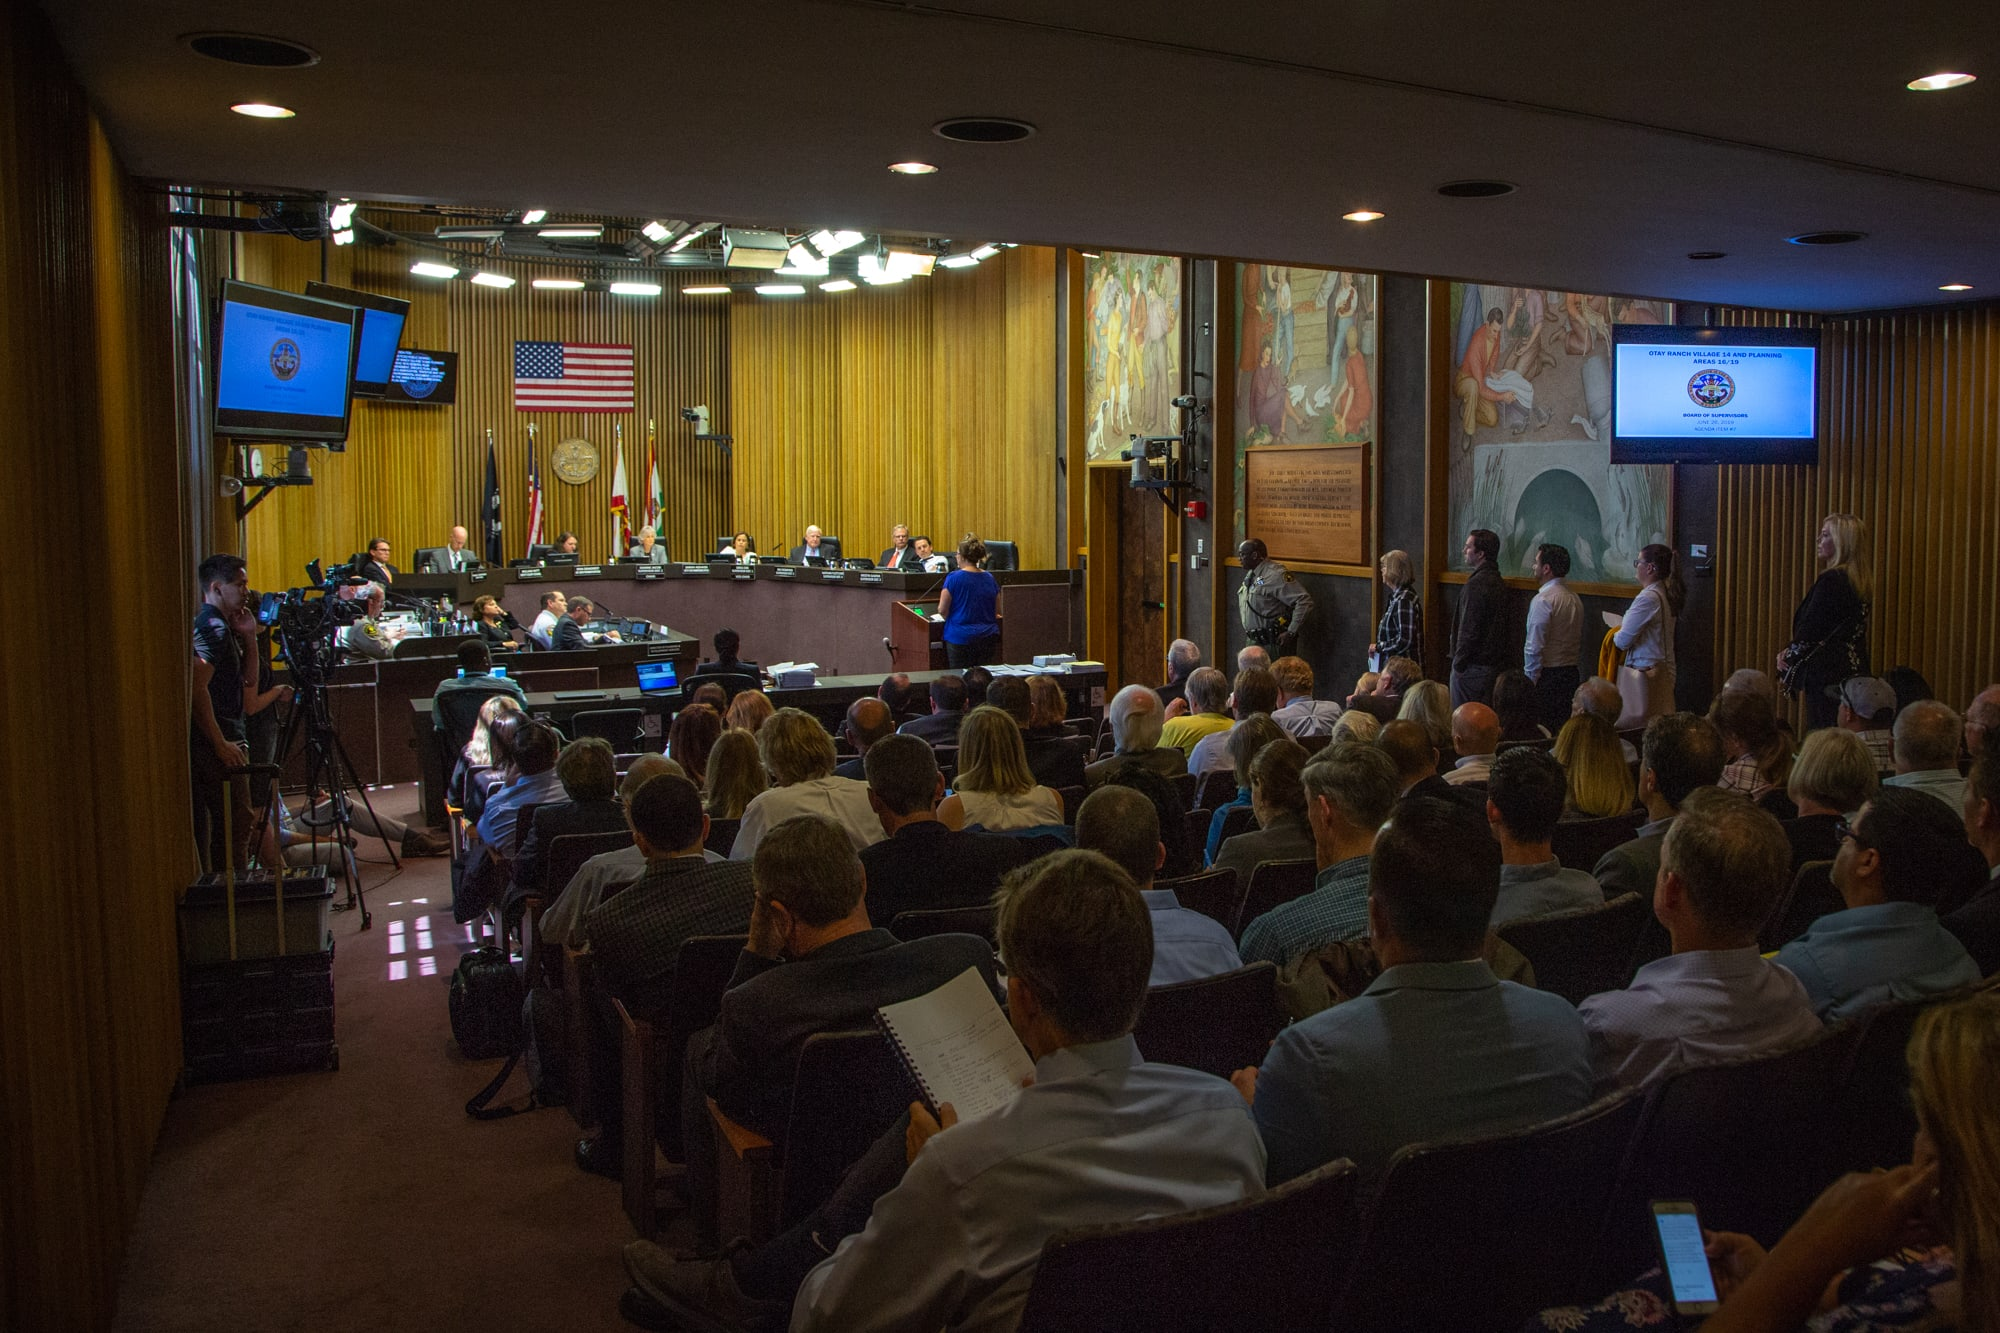 San Diego County residents line up to comment on a proposed housing development in an area that has burned every seven years on average since 1950. The development was approved. (Kailey Broussard/News21)